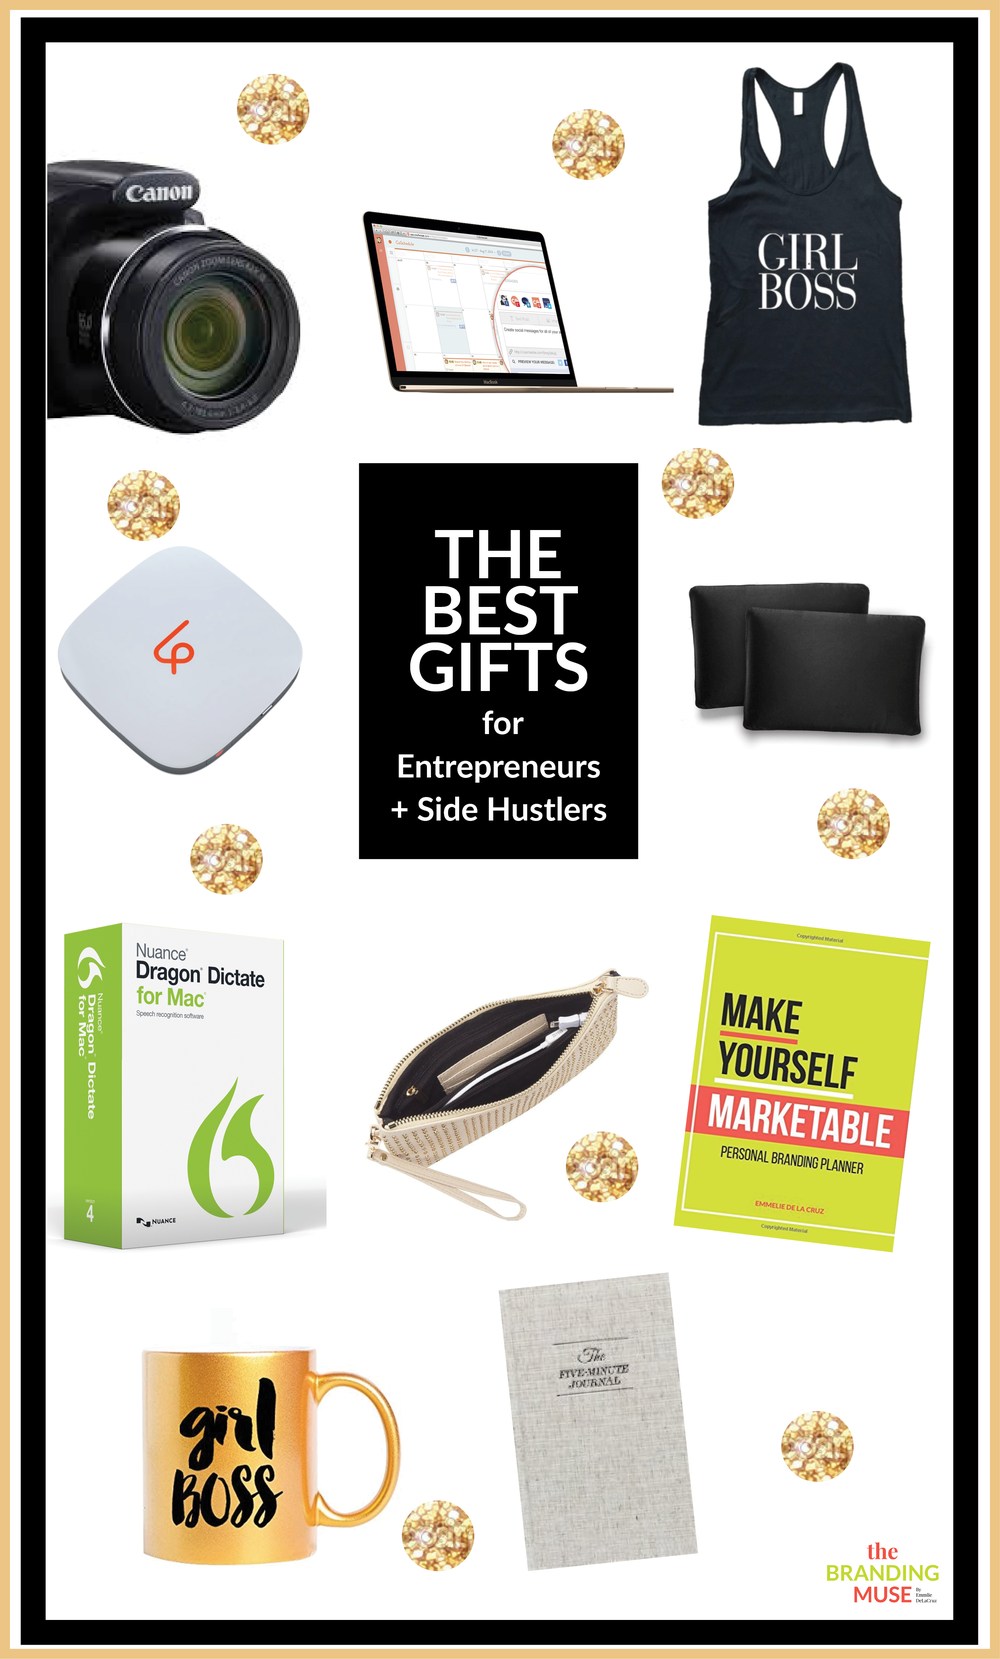 Christmas gifts under $200.00